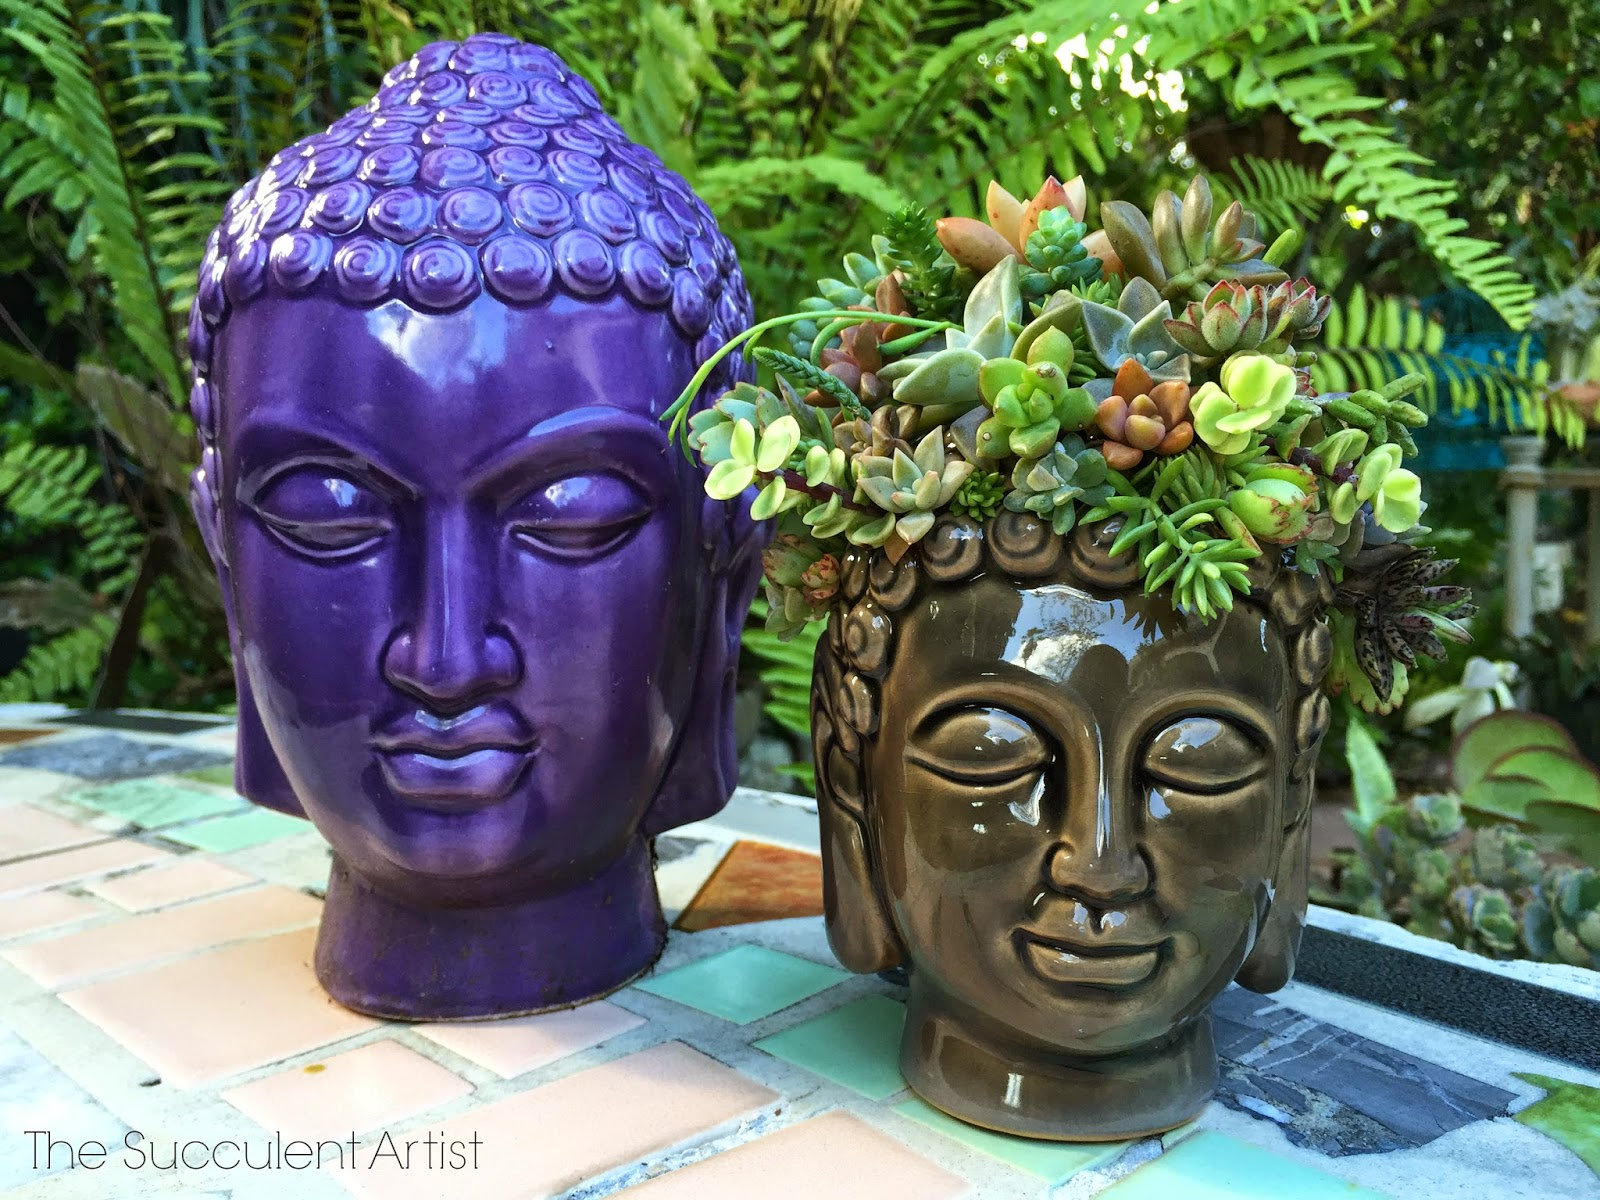 High Quality It Looks Wonderful Next To My Other Garden Buddhas, For Example: